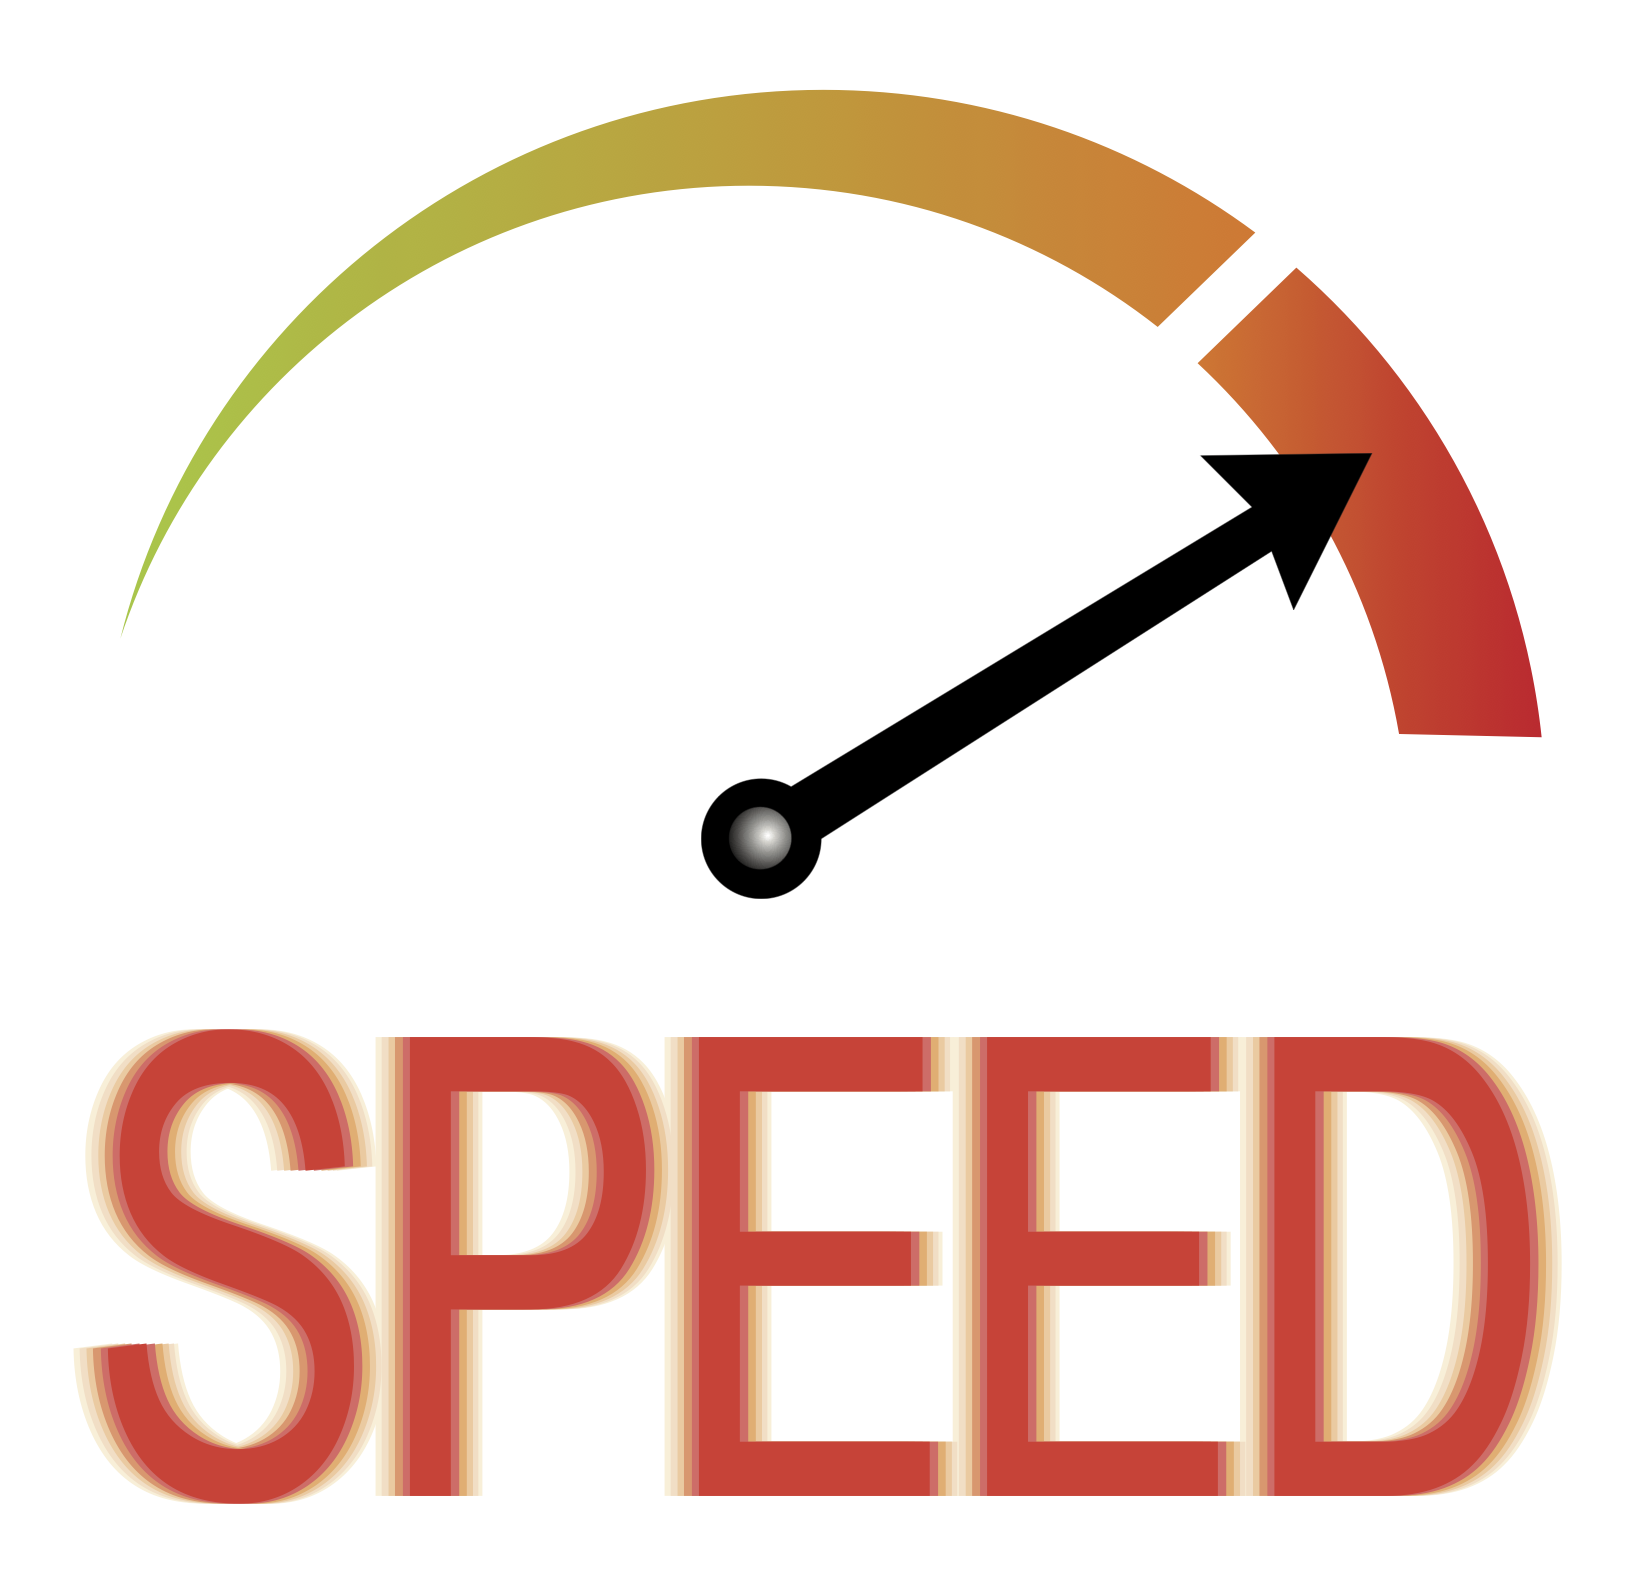 What should you do in order to speed up your website?